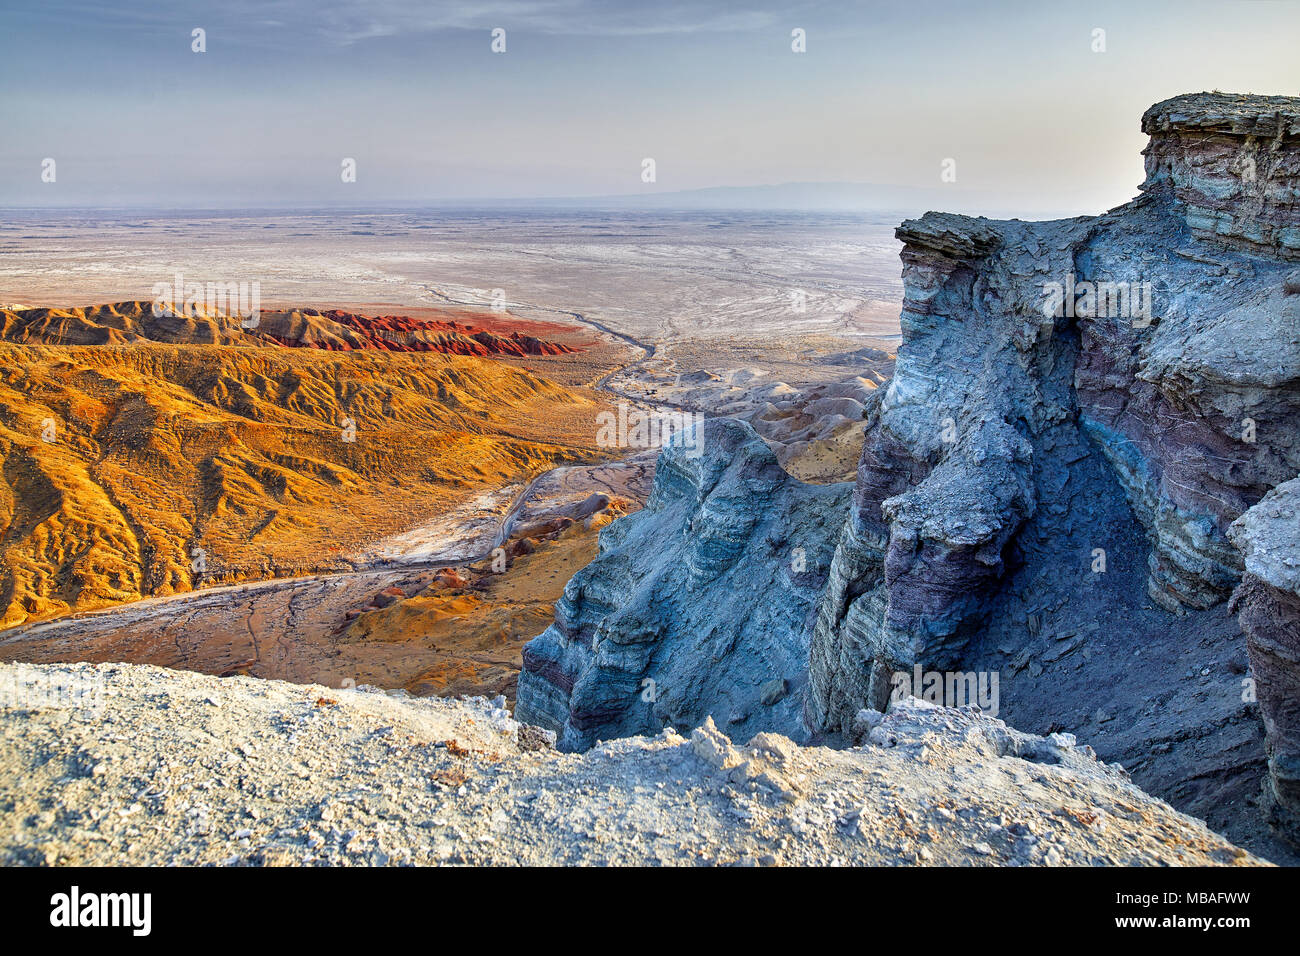 Aerial view of bizarre layered mountains in desert park Altyn Emel in Kazakhstan Stock Photo